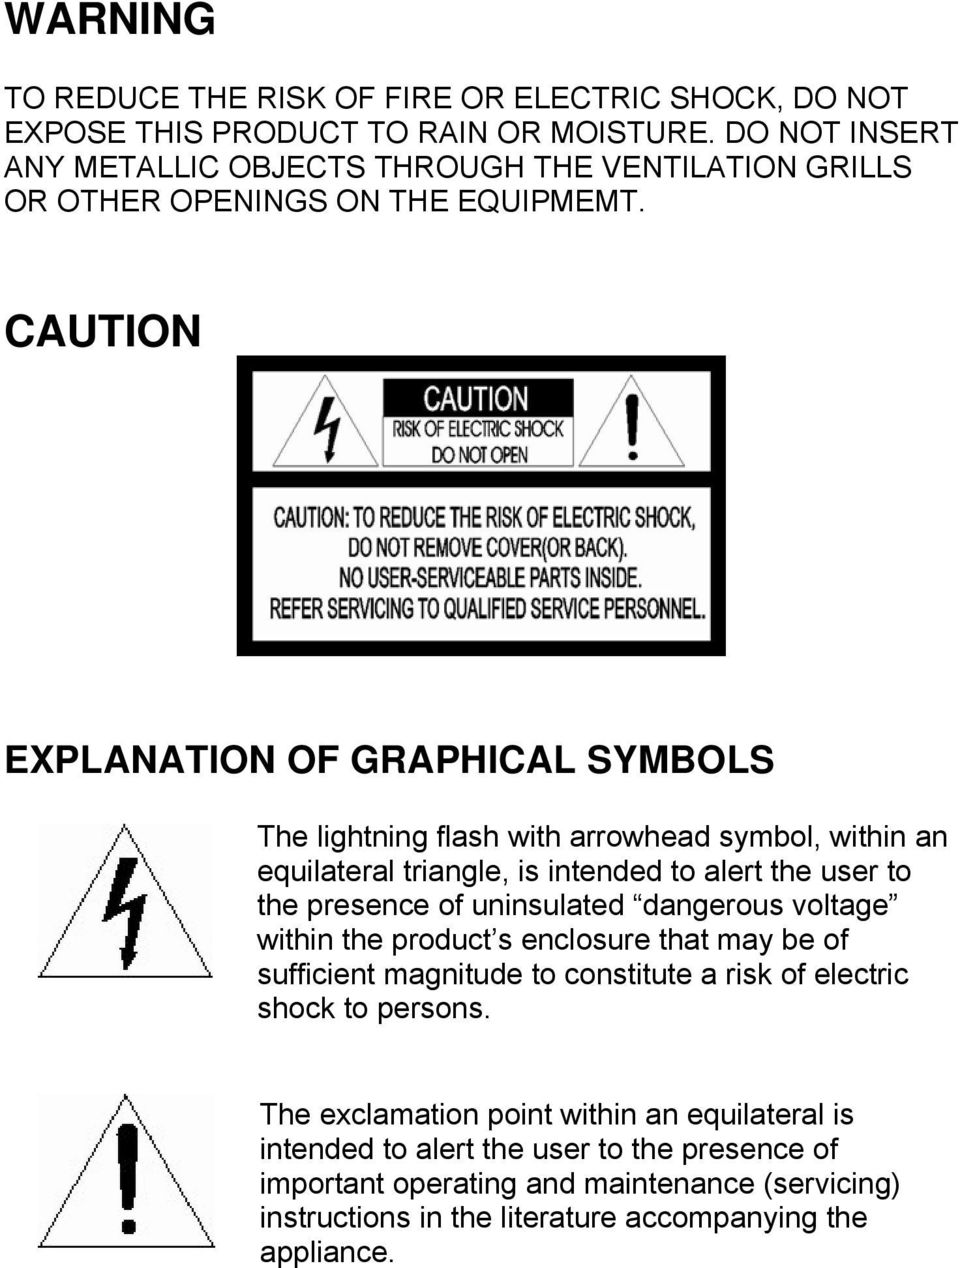 CAUTION EXPLANATION OF GRAPHICAL SYMBOLS The lightning flash with arrowhead symbol, within an equilateral triangle, is intended to alert the user to the presence of uninsulated